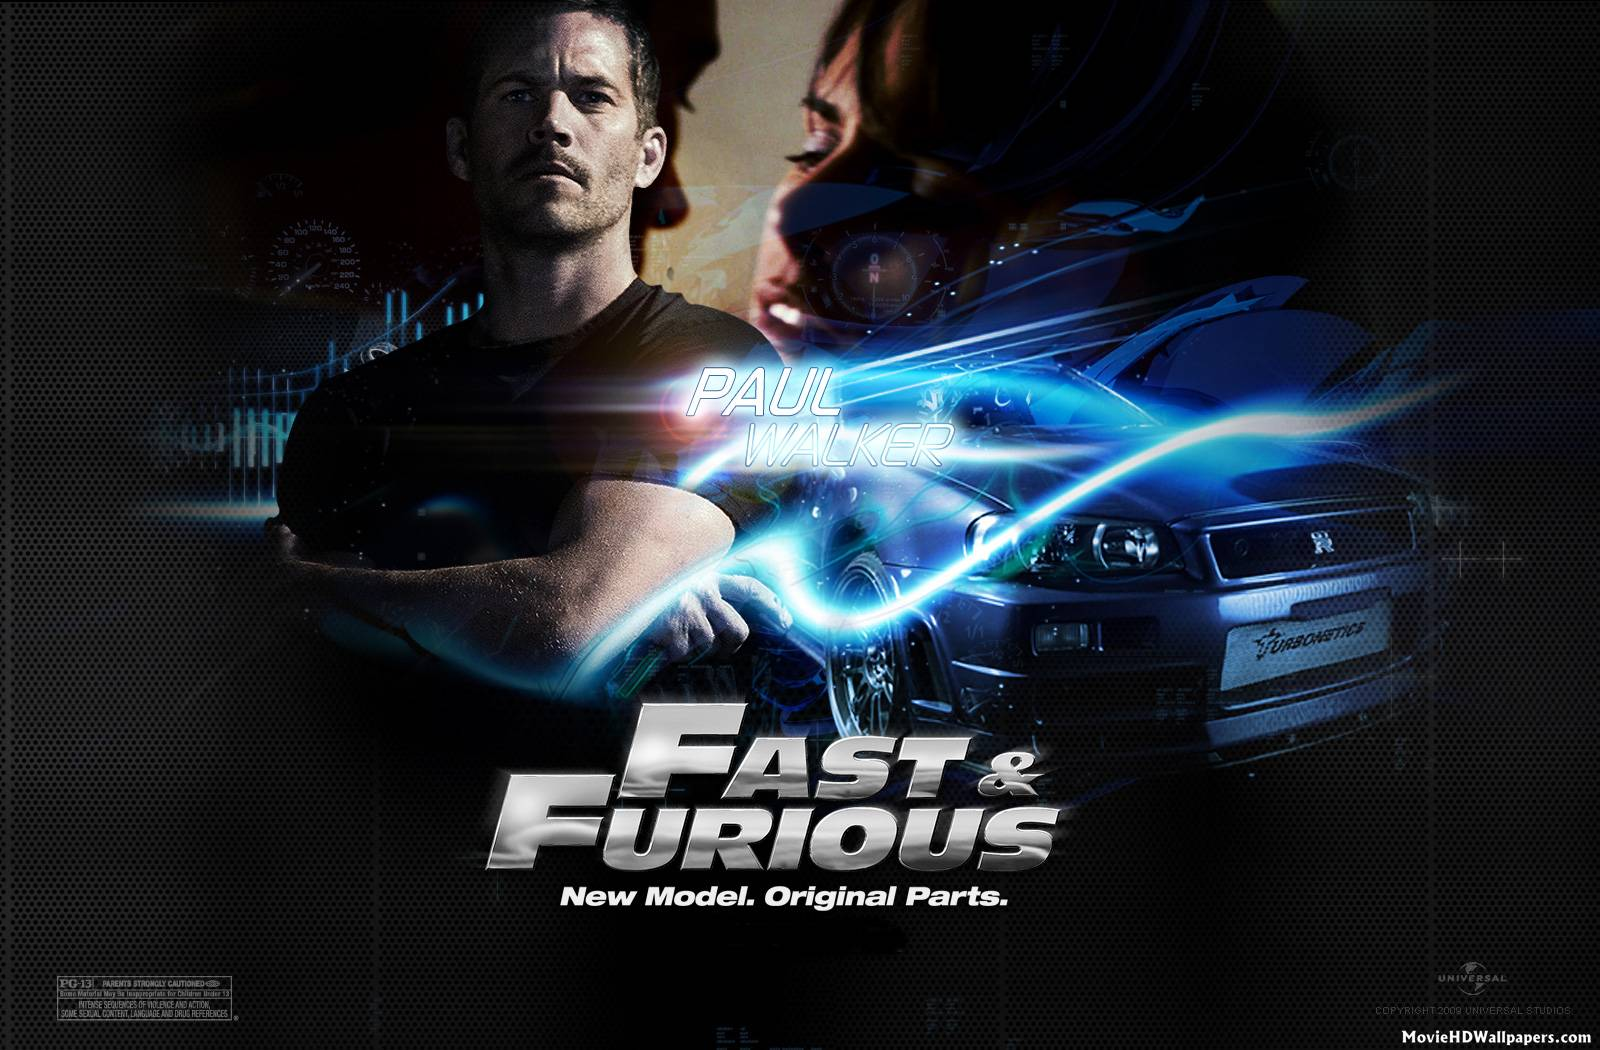 Fast And Furious 6 2013 Wallpapers 300x250 Fast And Furious 6 (2013)